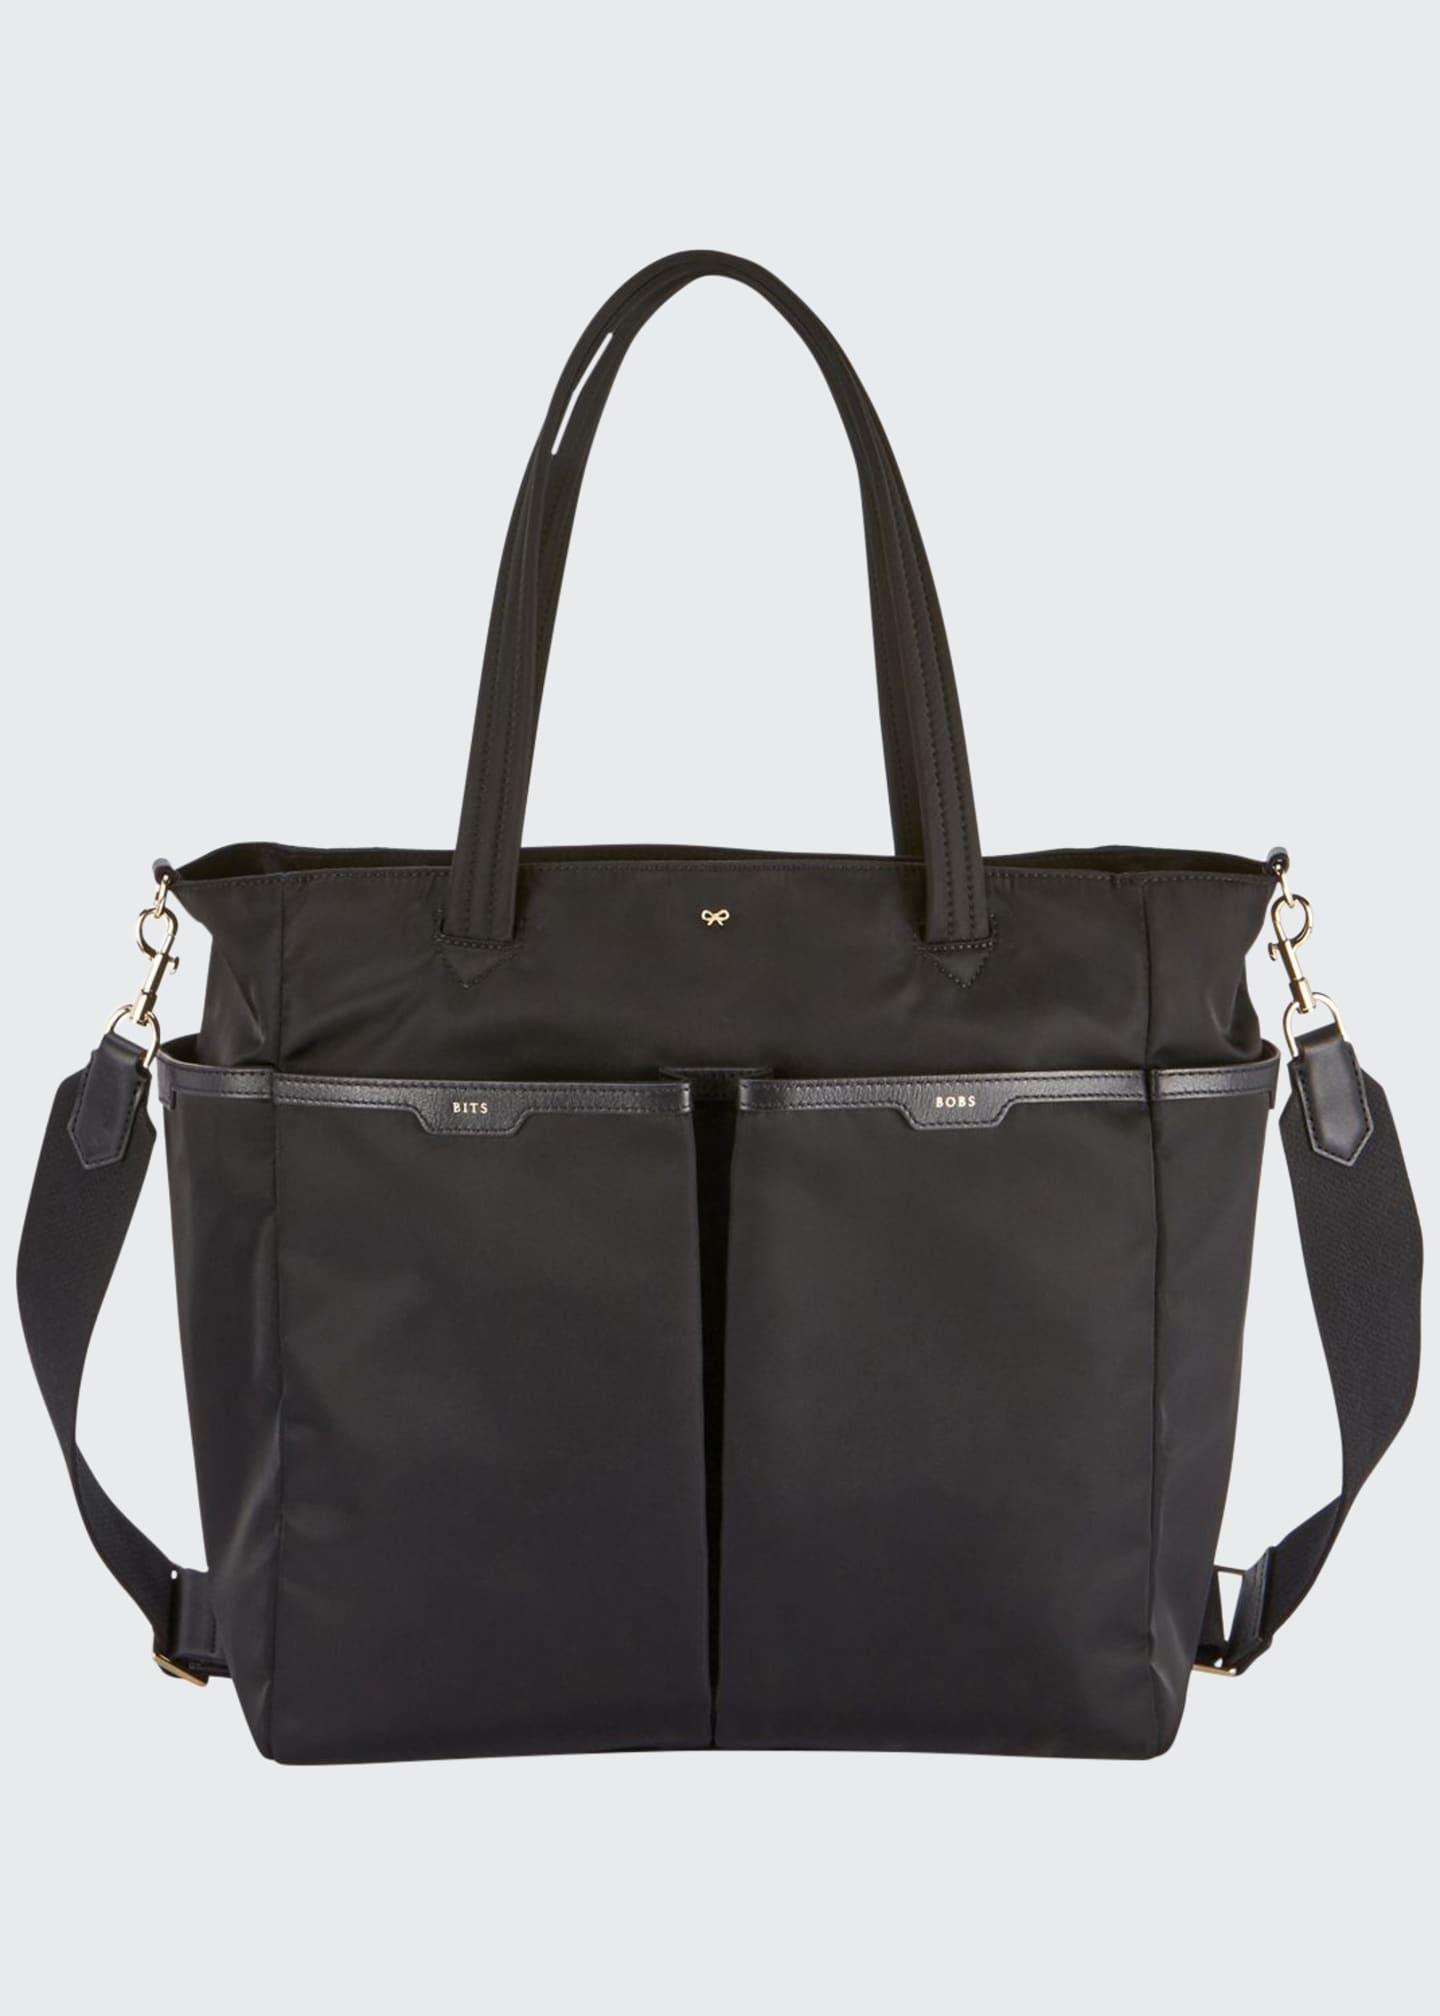 Anya Hindmarch Nylon Baby Diaper Bag